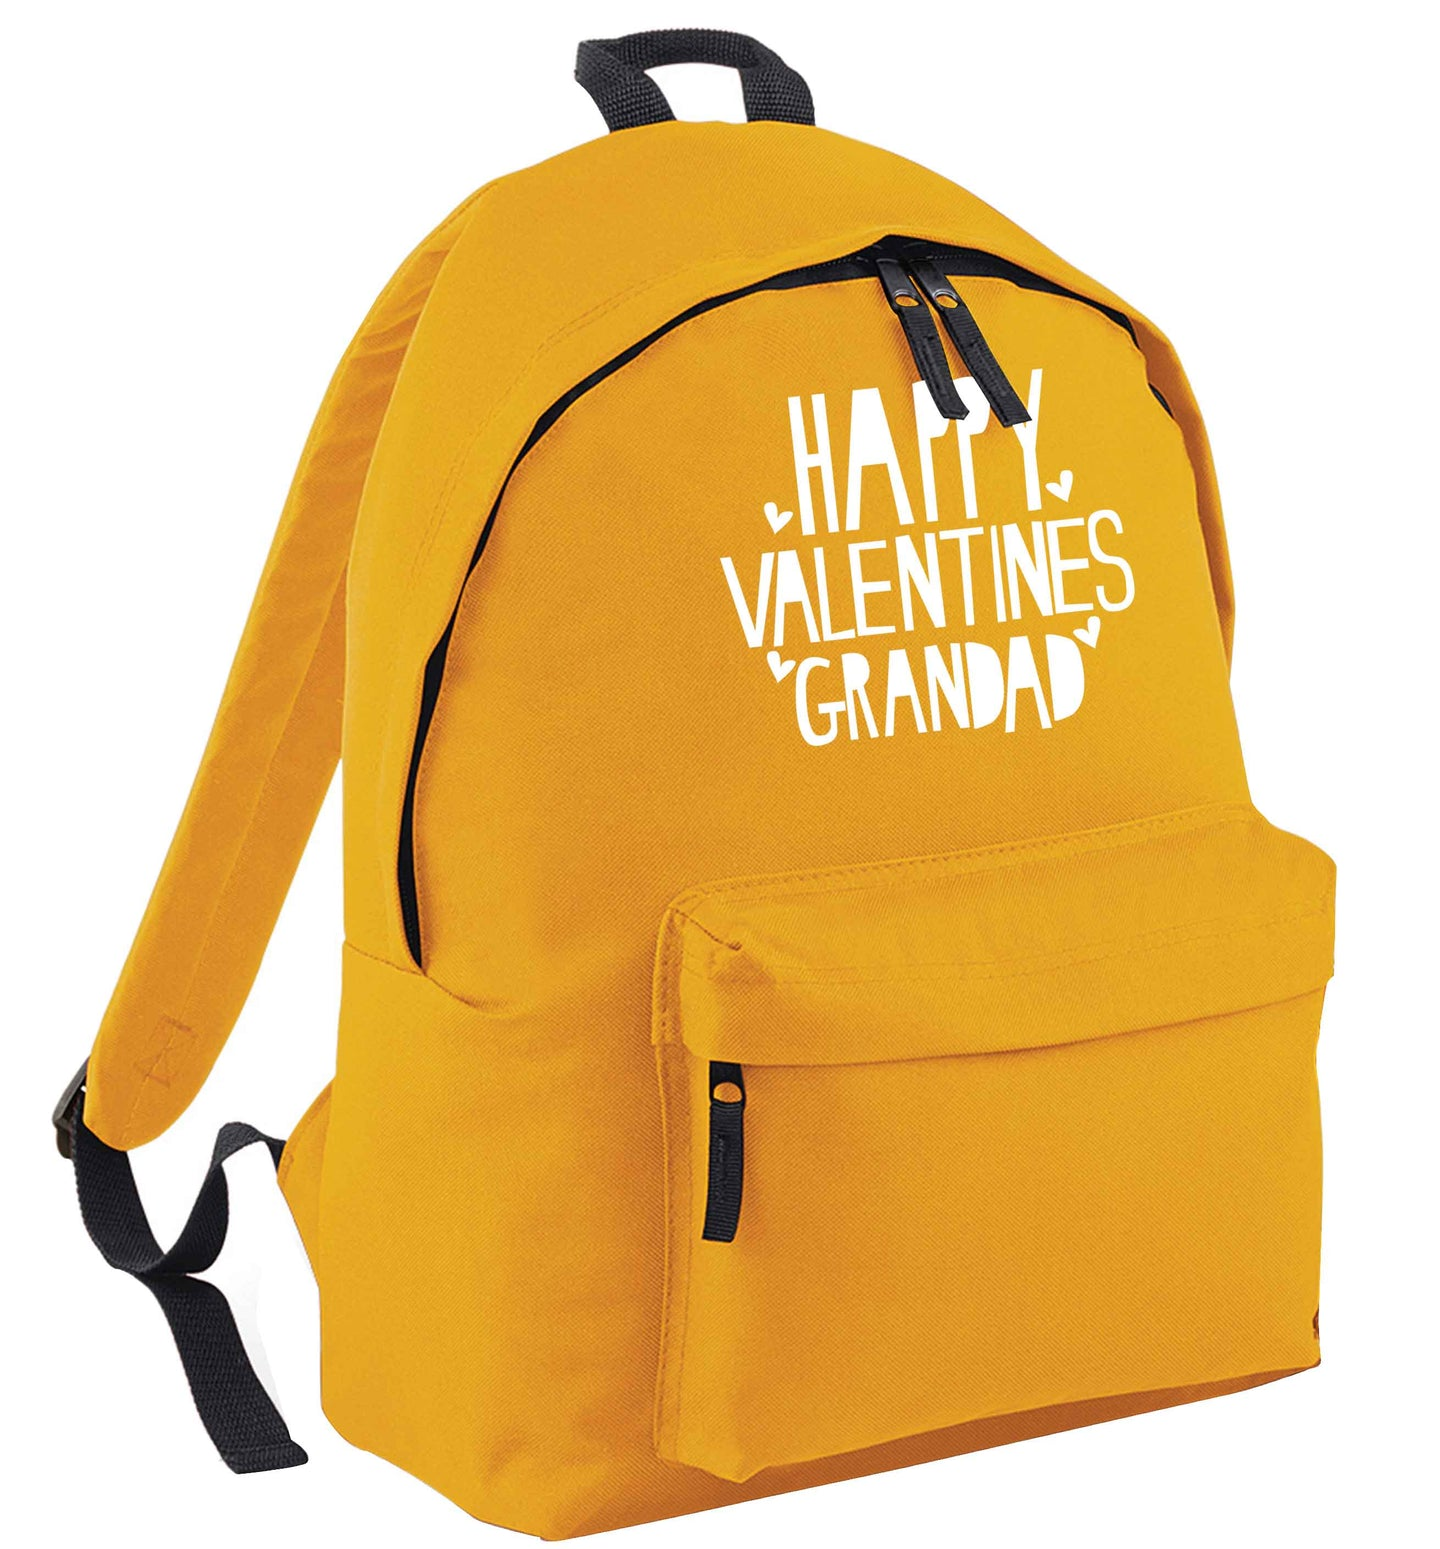 Happy valentines grandad mustard adults backpack